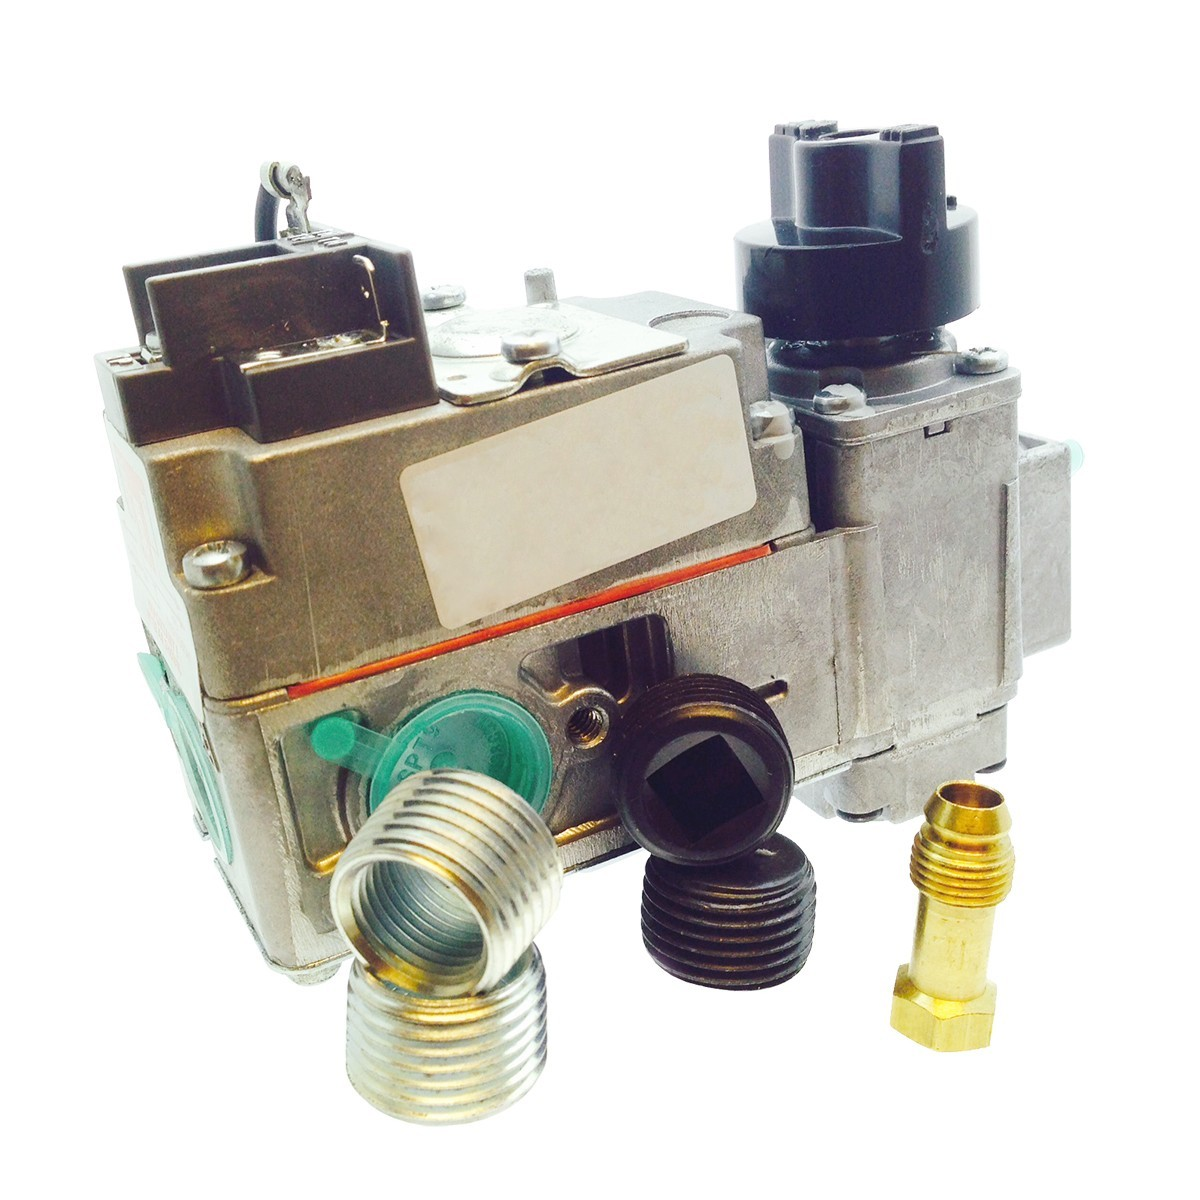 MilliVolt Gas Valve For Pro & Nat